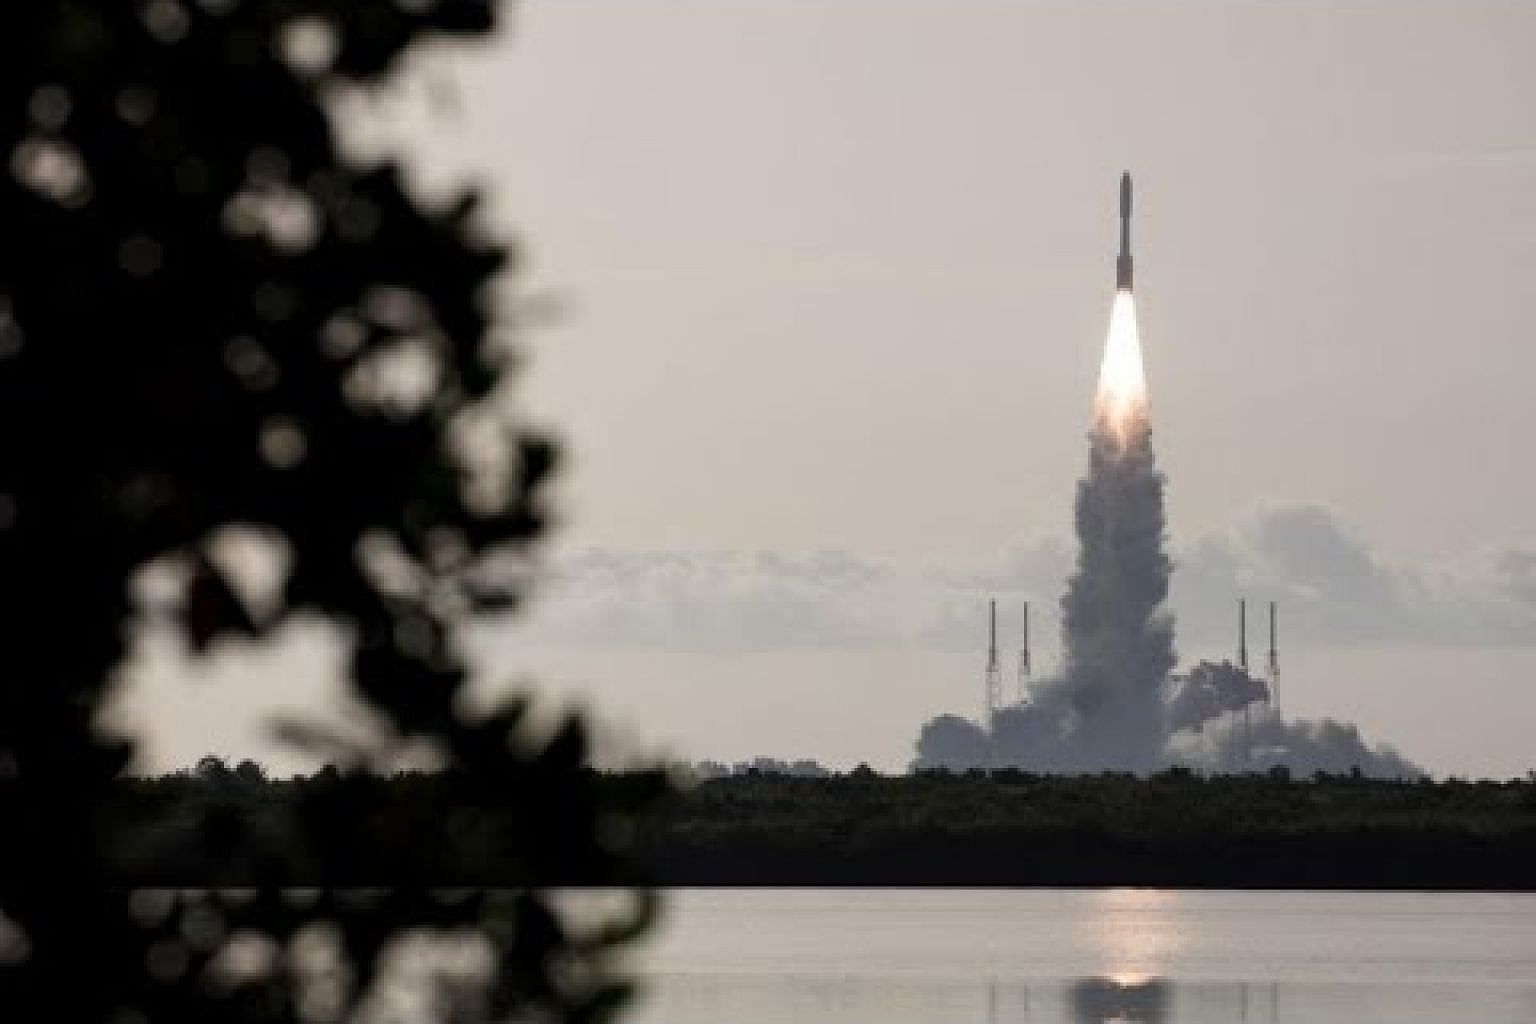 New Mars rover launches, seeks signs of past life